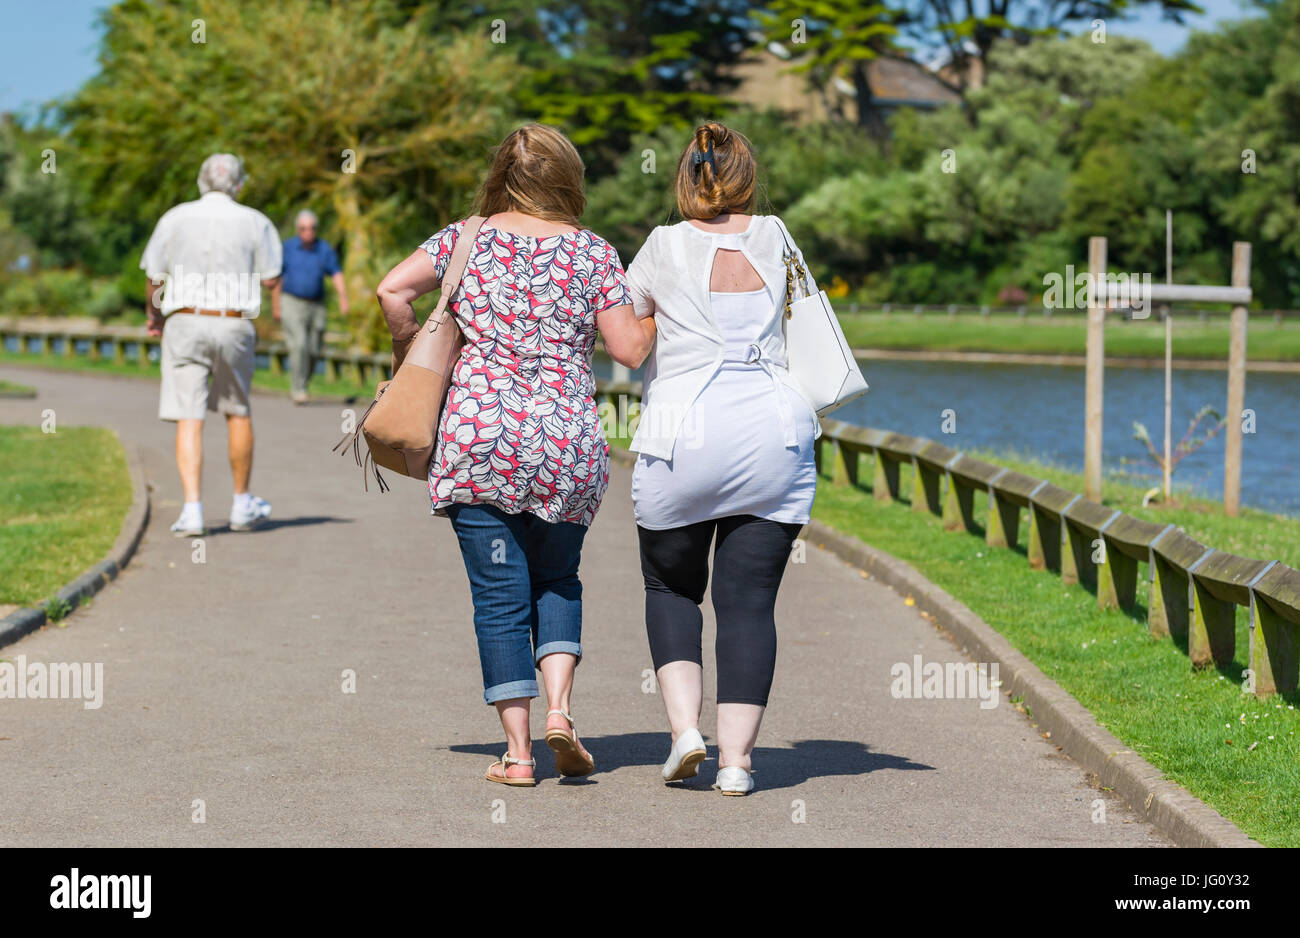 Female friends linking arms while walking through a park by a lake on a warm summer's day. Stock Photo